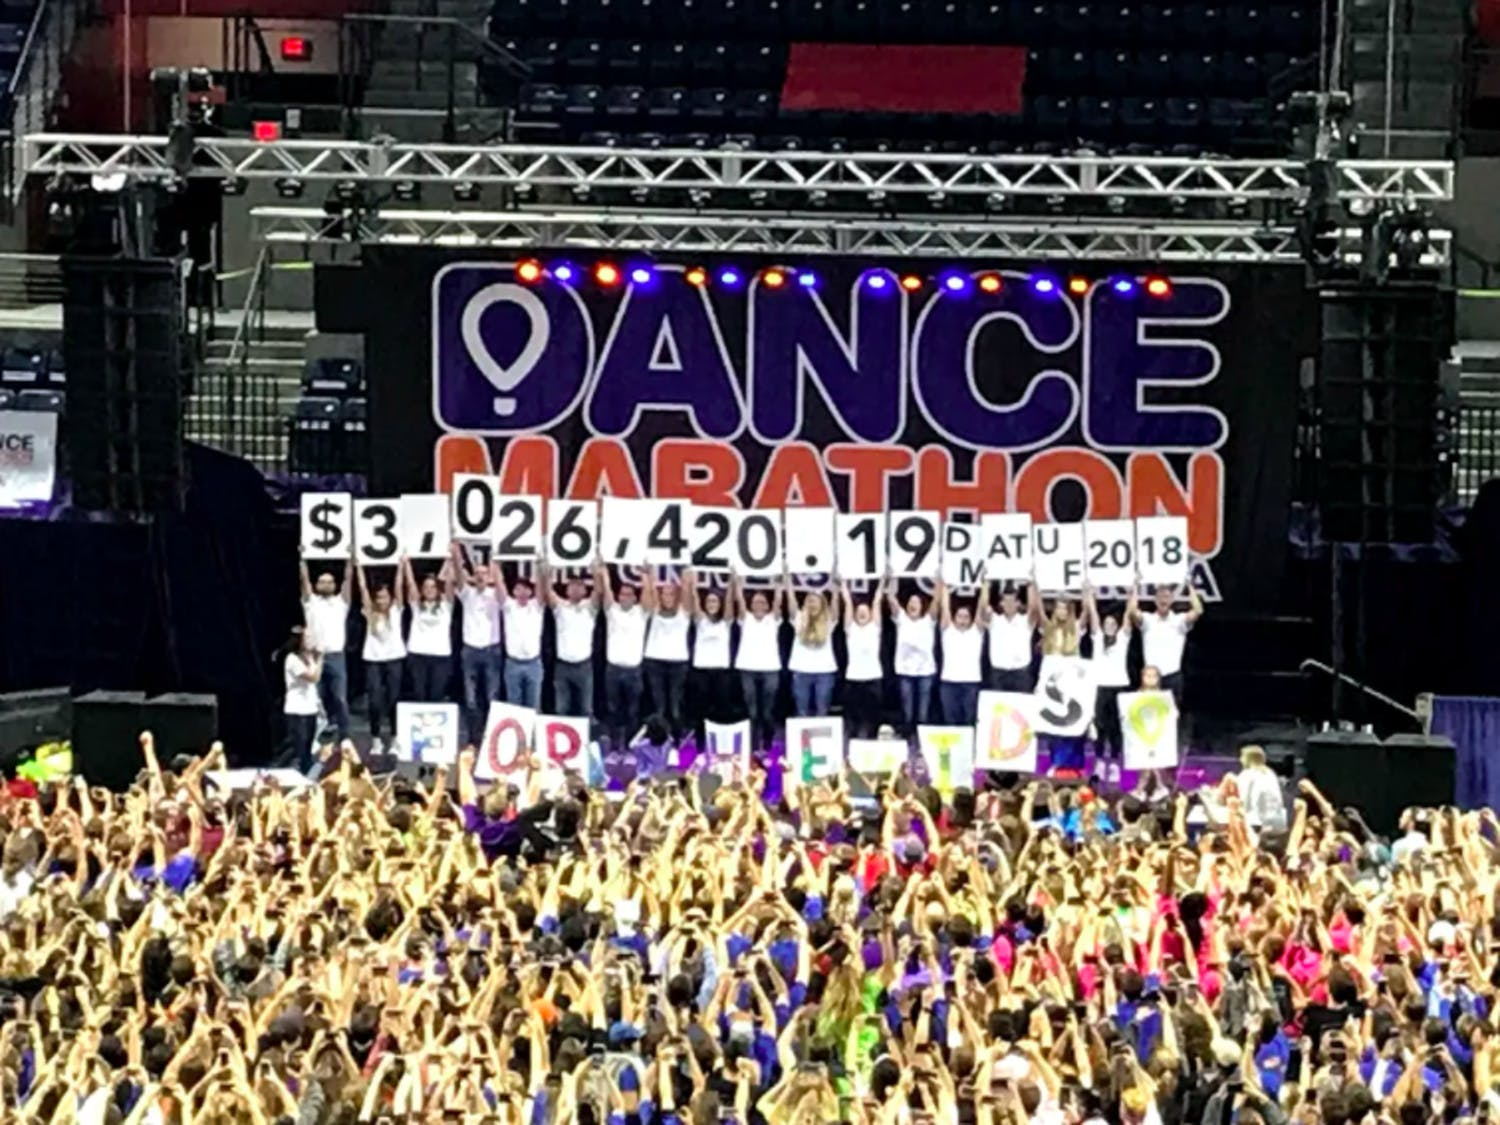 UF Dance Marathon staff members hold signs revealing the total amount of money fundraised this year, totaling $3,026,420.19 for the Children's Miracle Network.